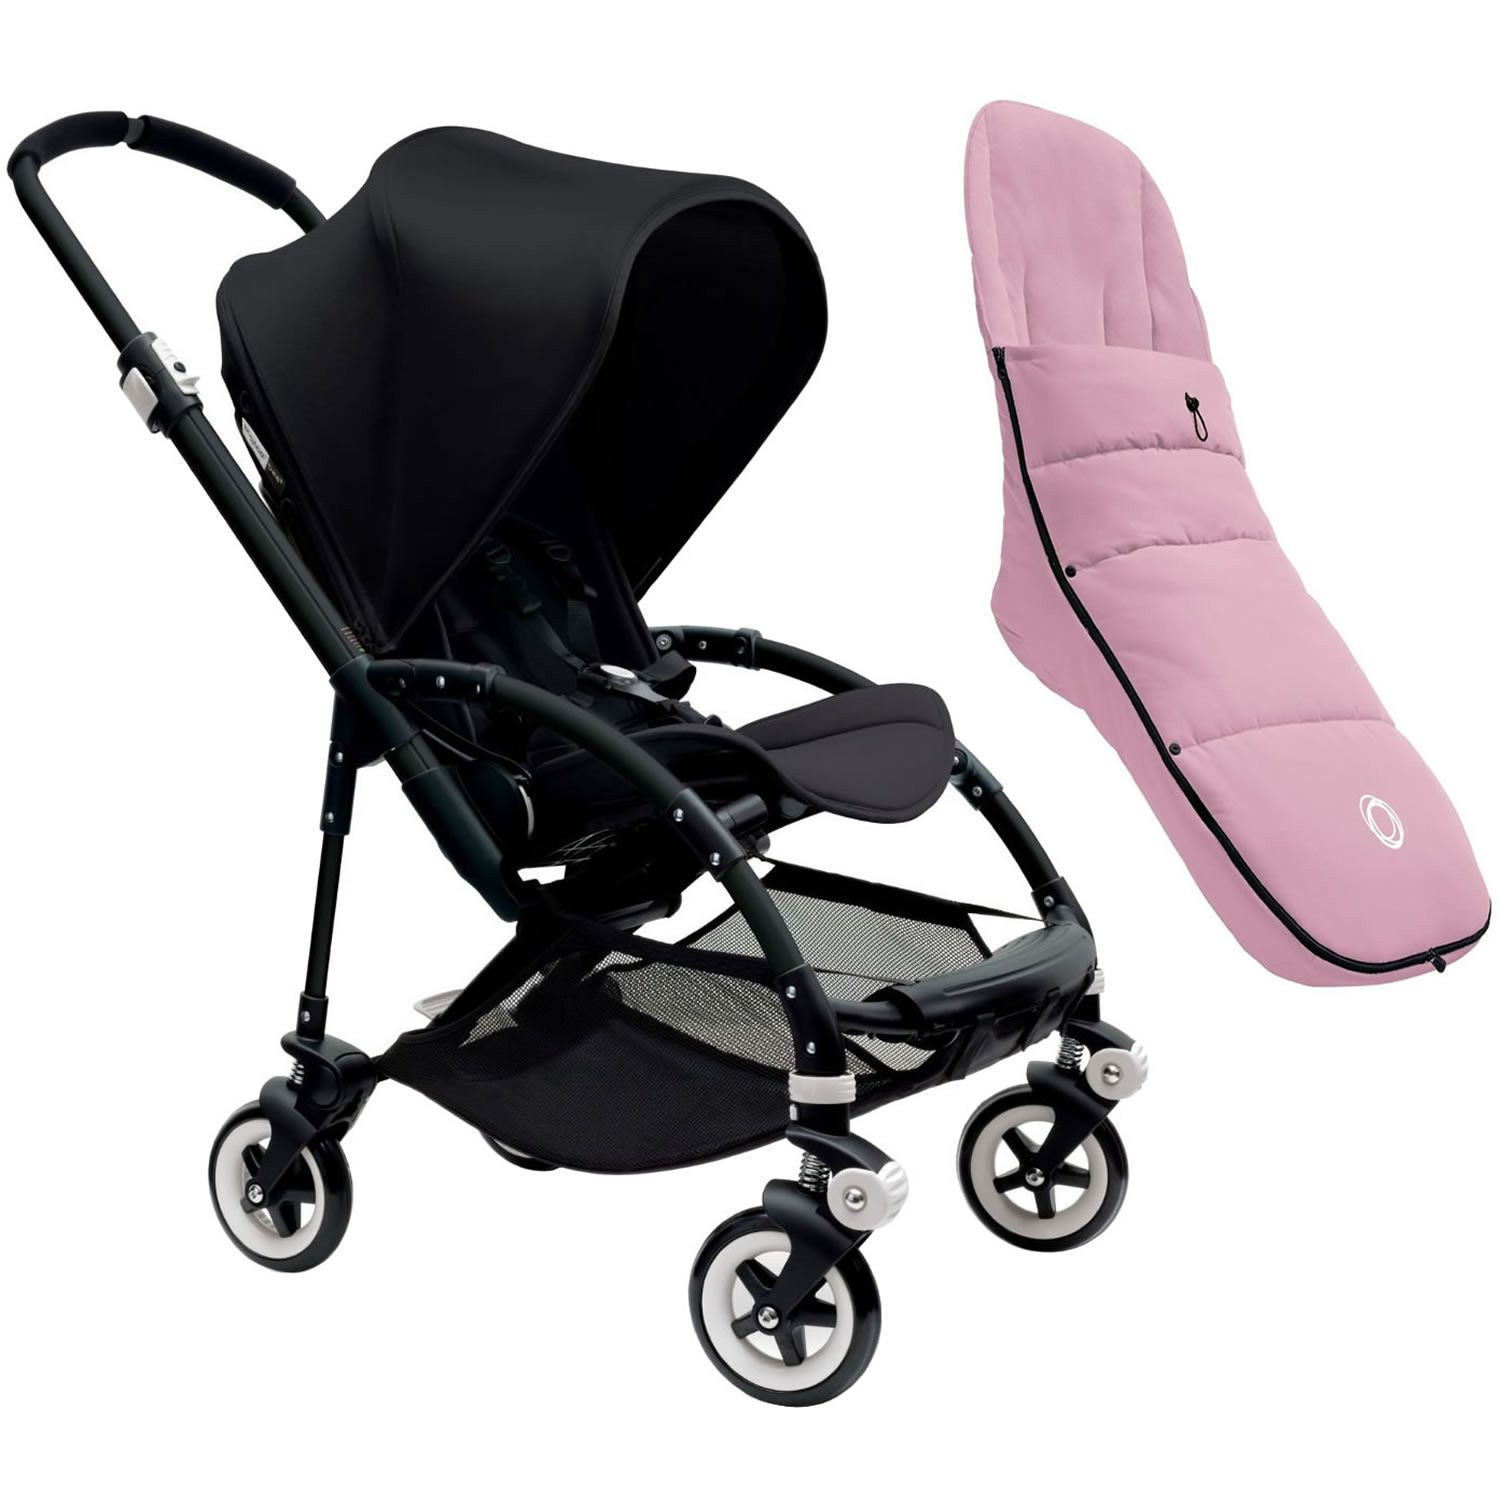 Bugaboo Bee3 Stroller Black Black Black with Bugaboo